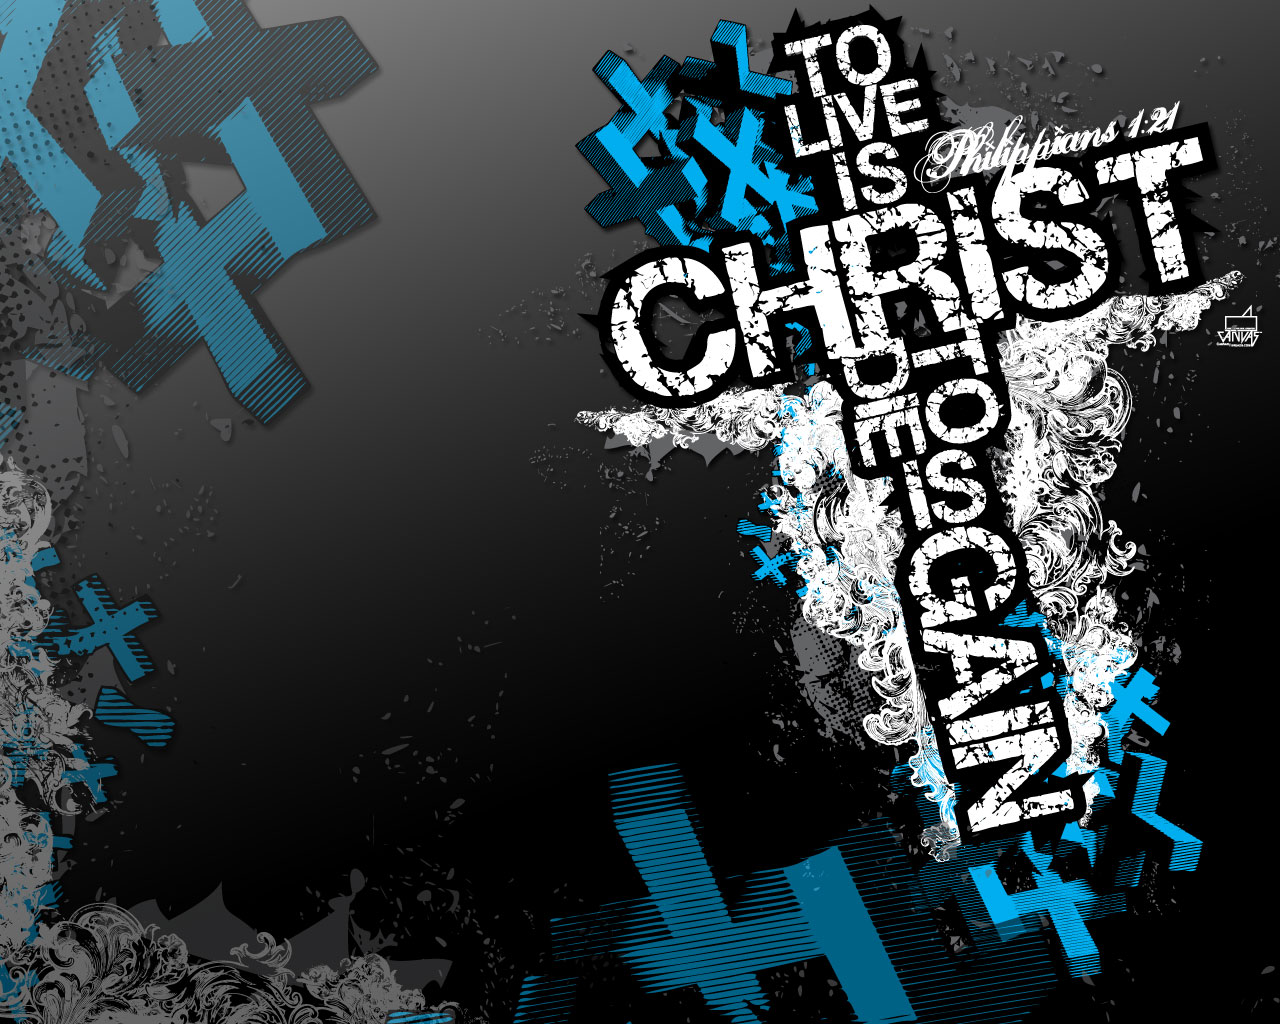 Kids Christian Backgrounds wallpaper wallpaper hd background 1280x1024